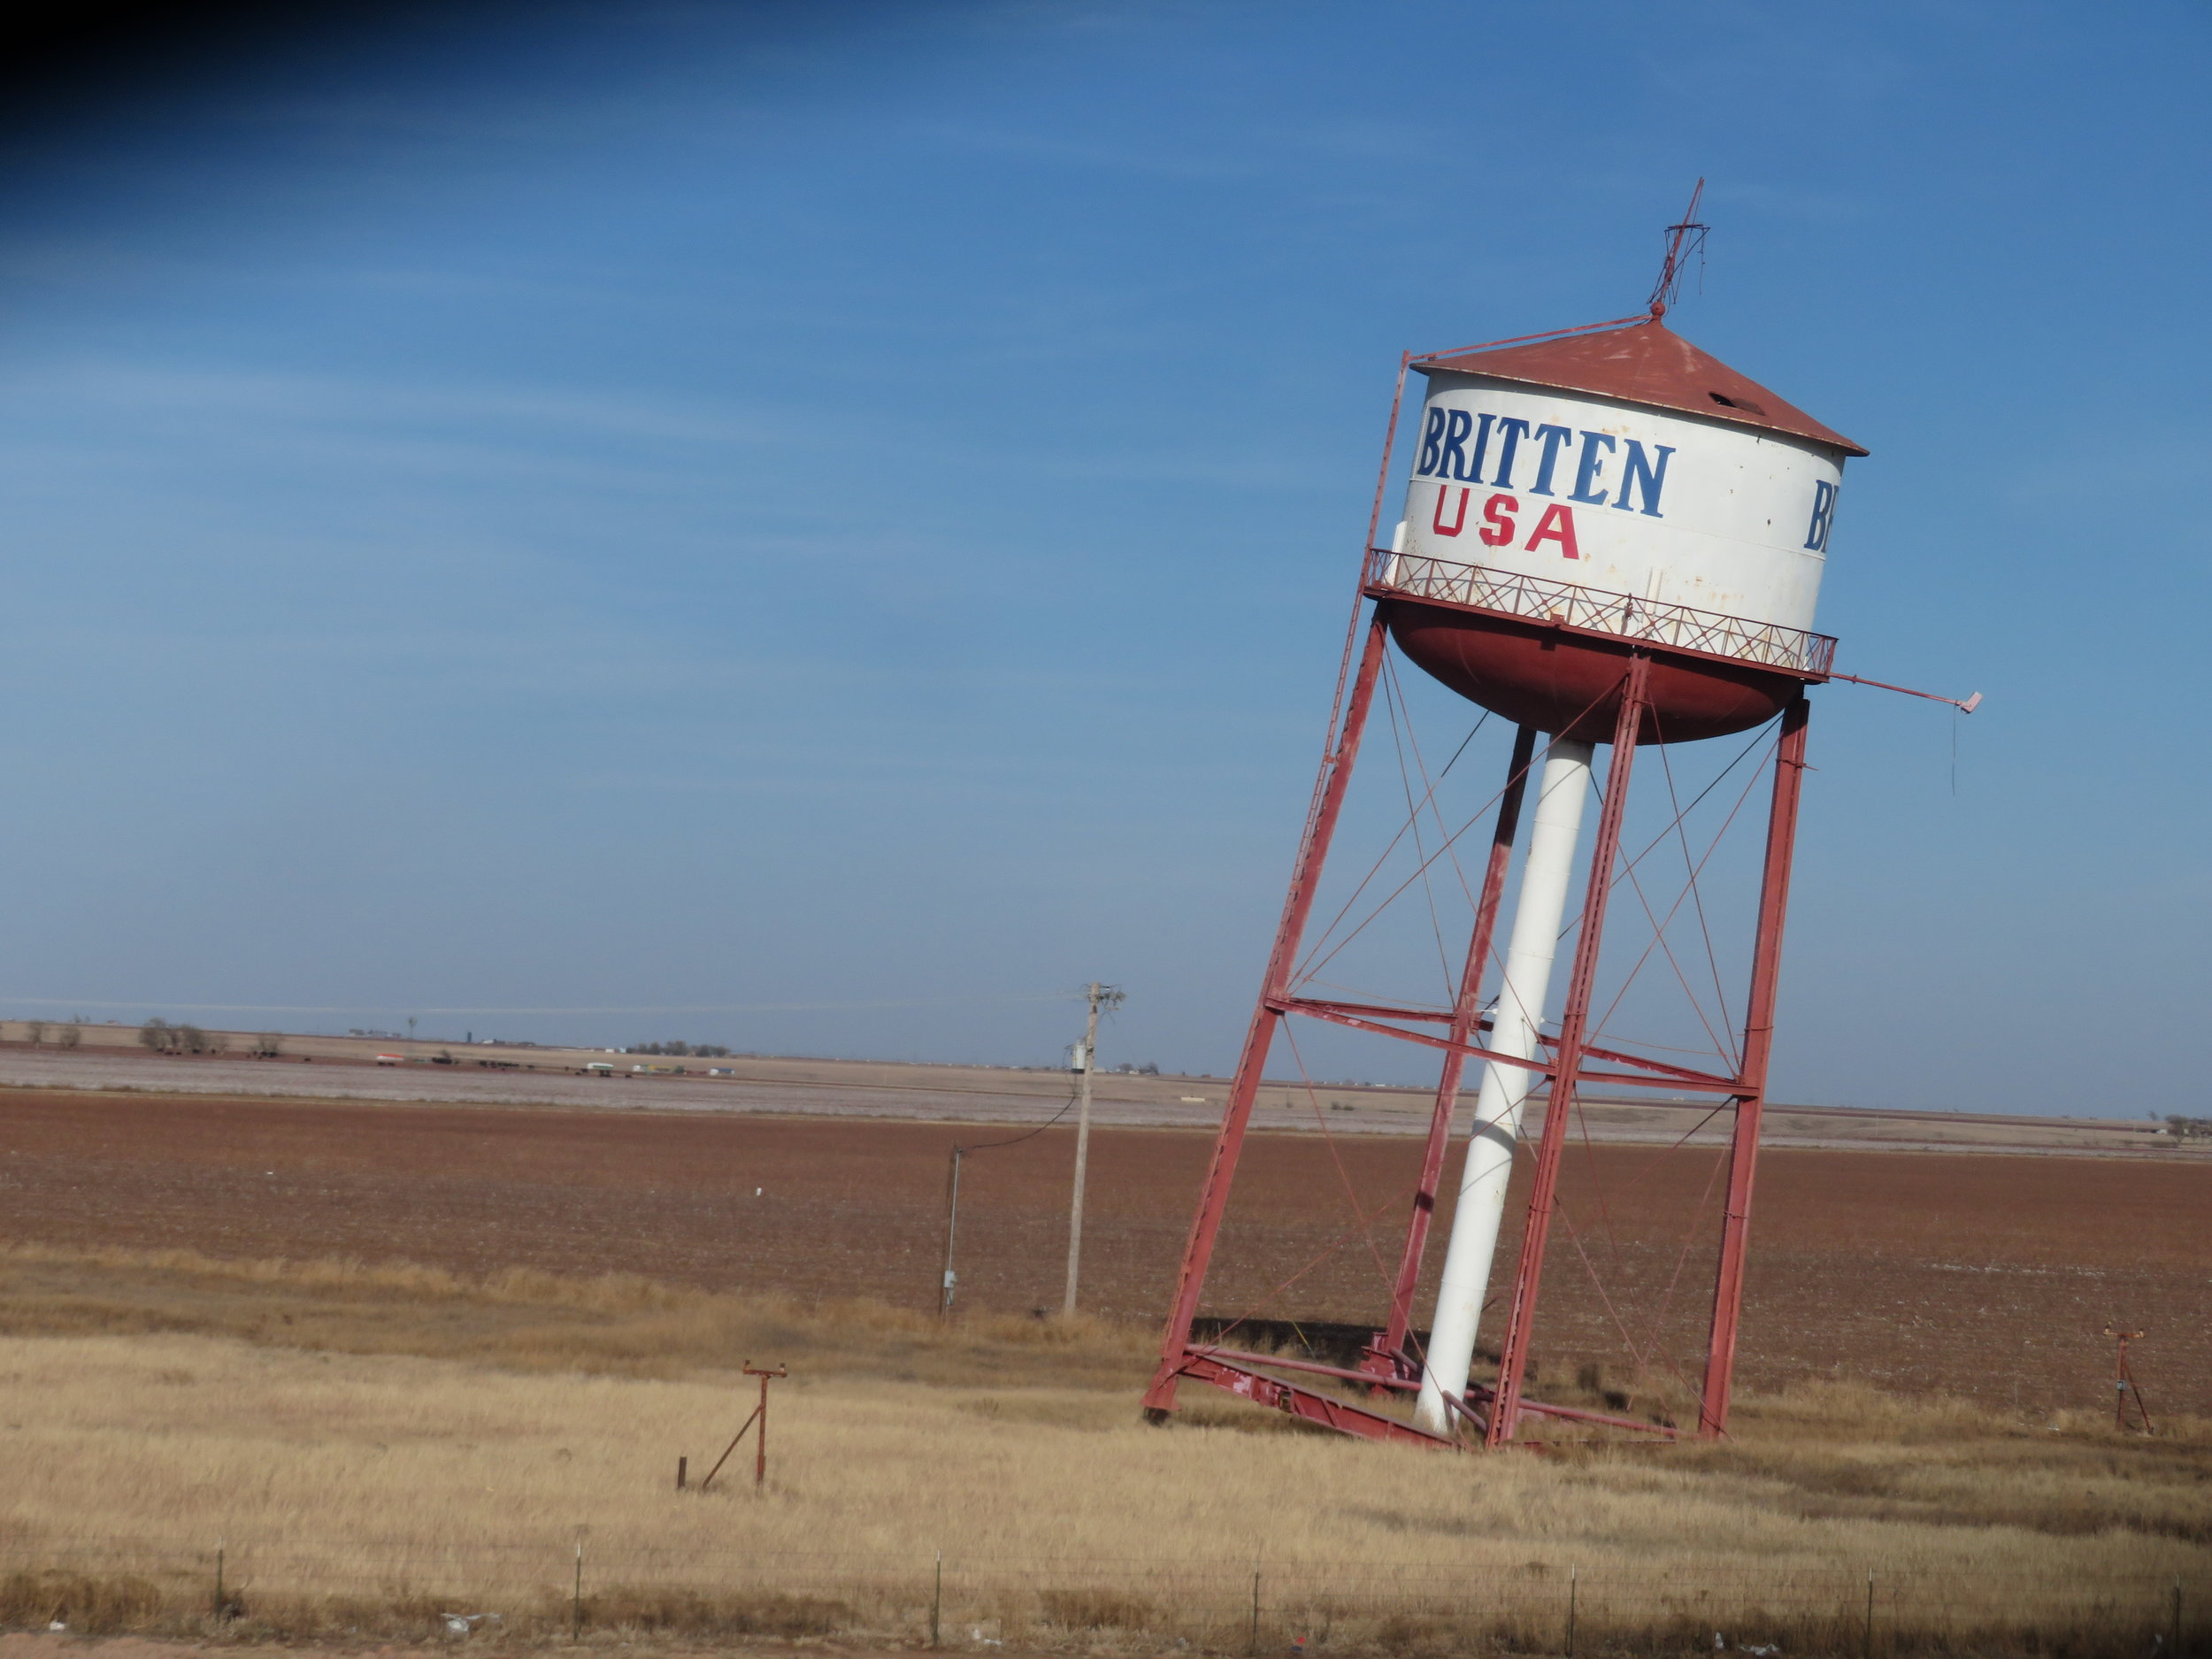 The leaning tower of ... wait for it ...Britten, Texas!